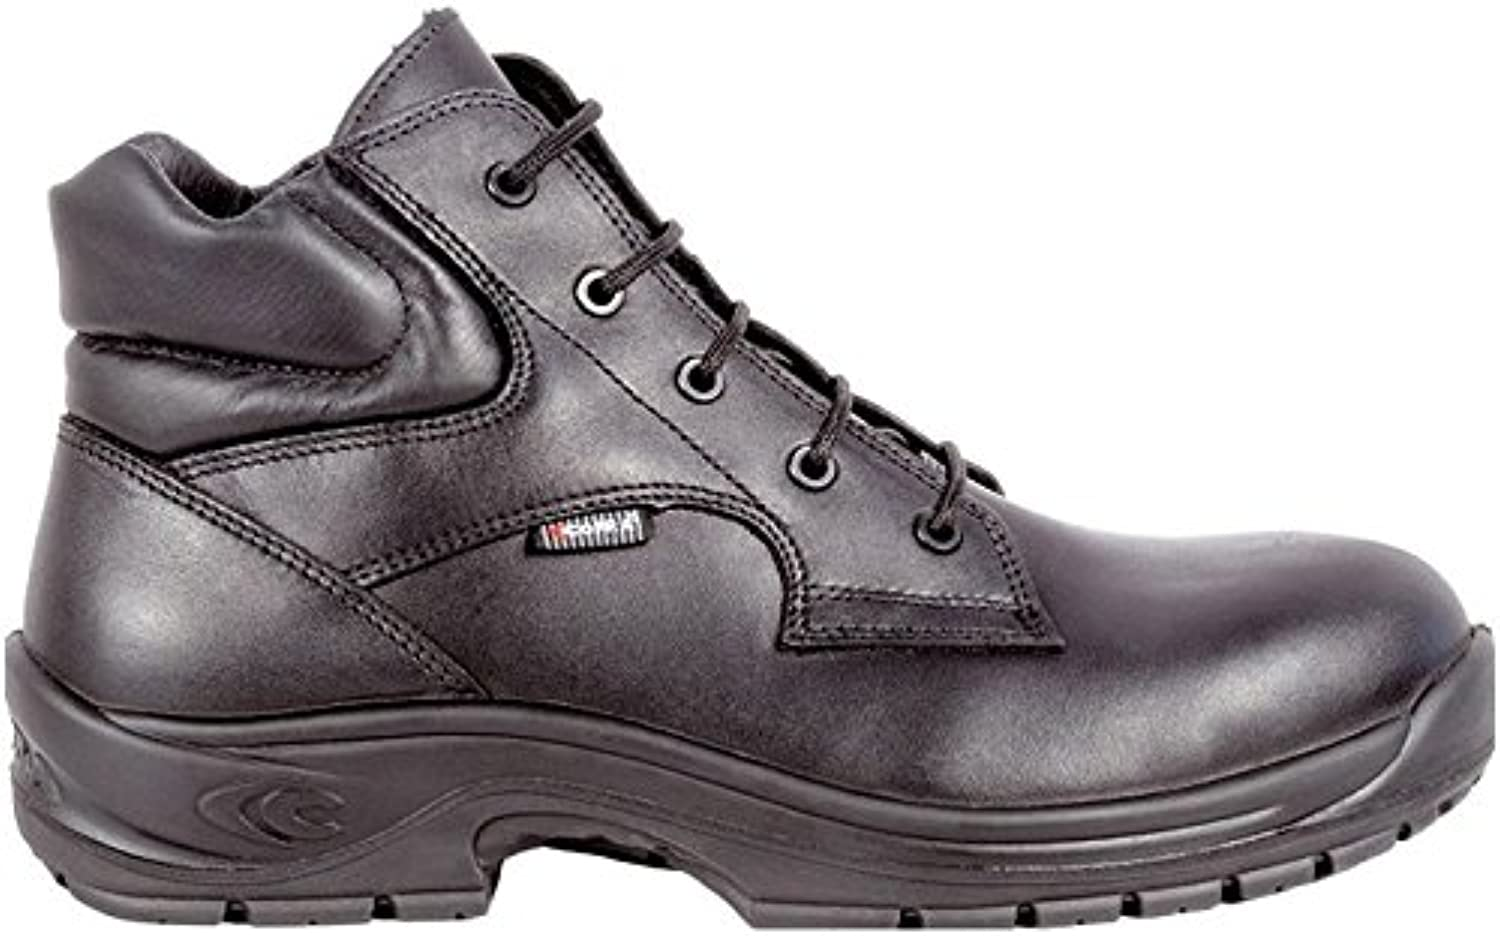 Cofra 10013-000.W39 Safety shoes Picket S3 HRO SRC Size 39 in Black